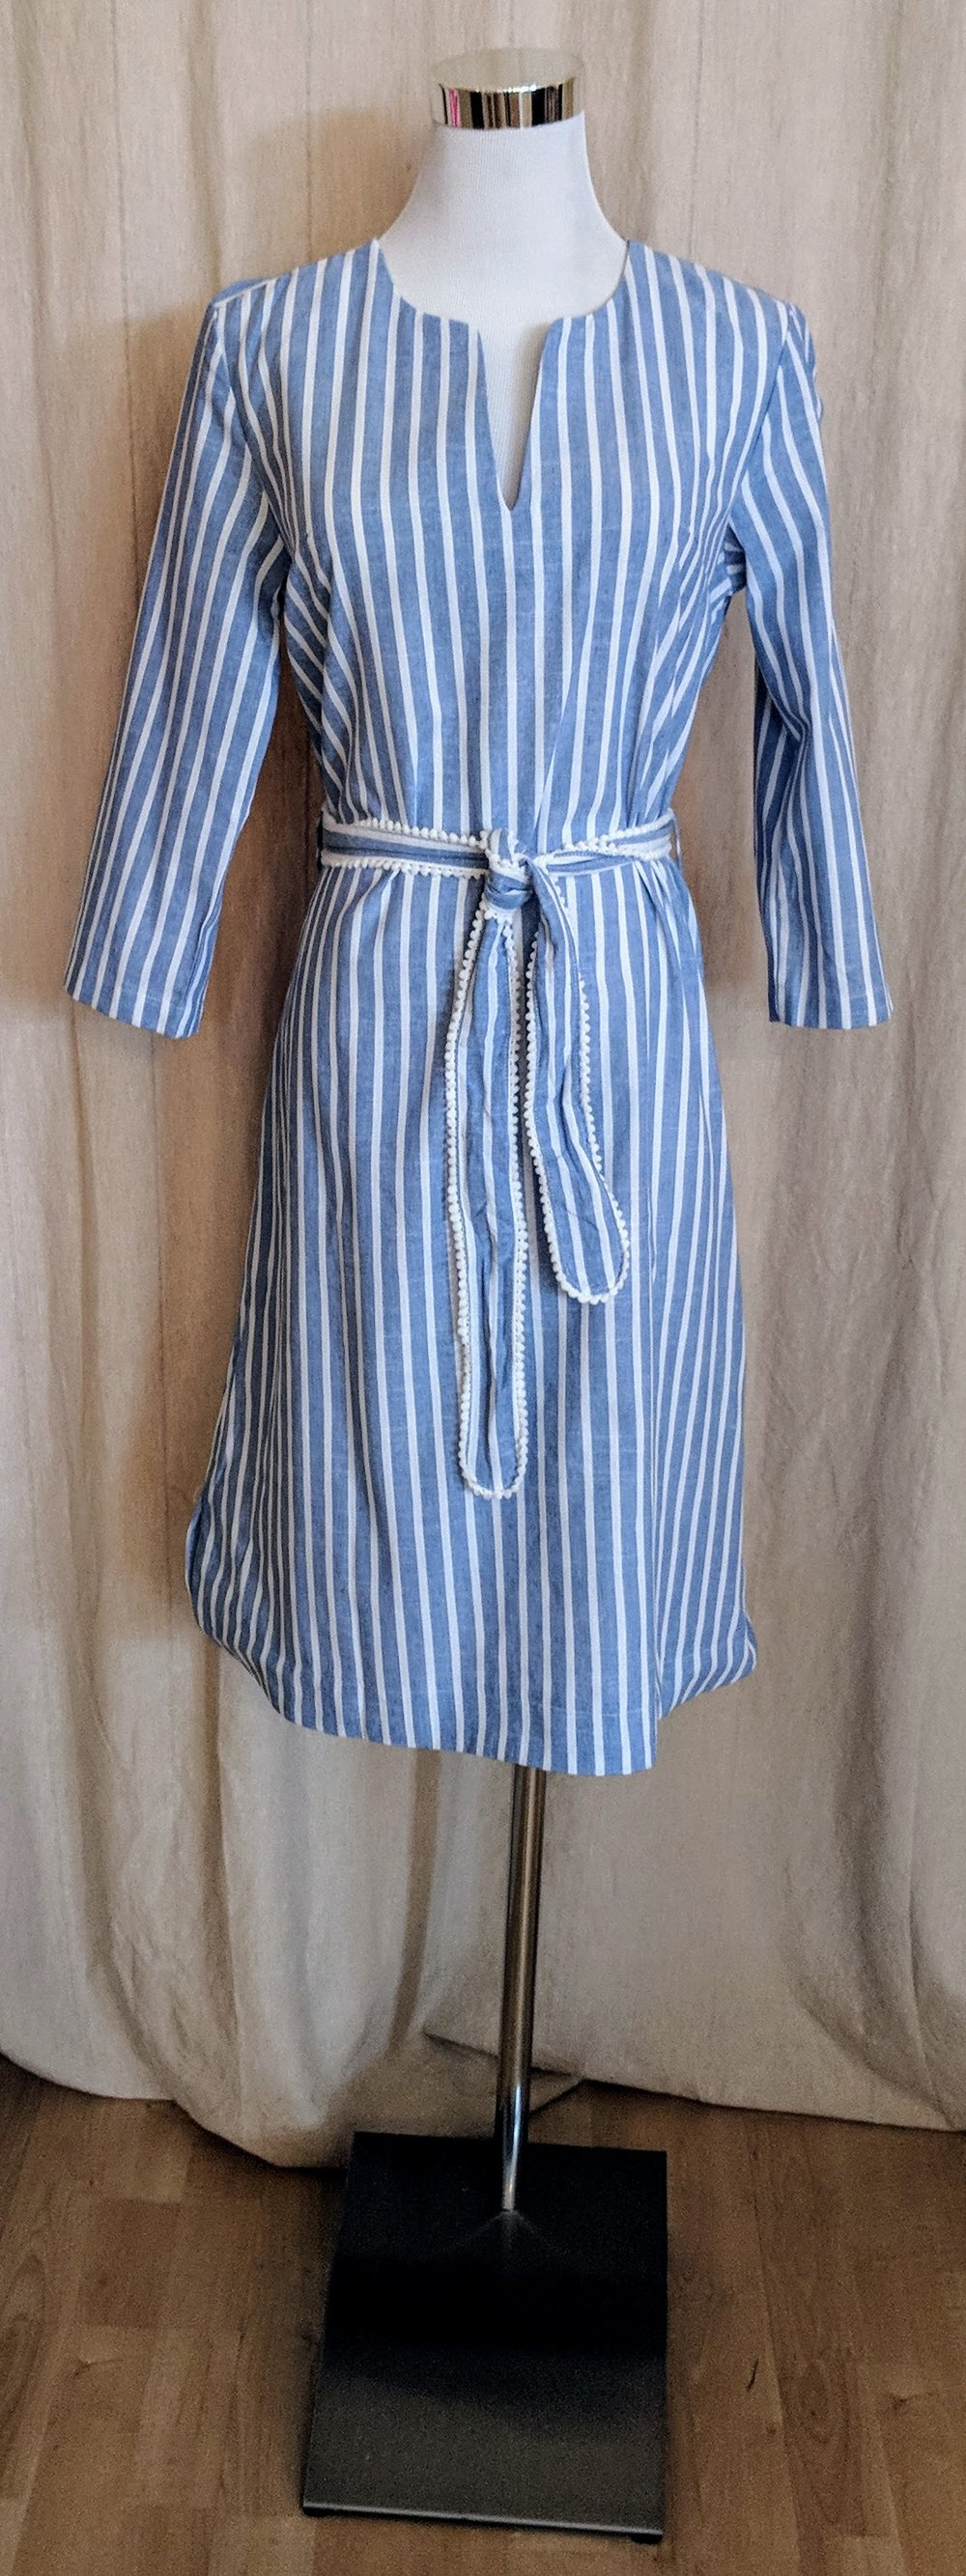 Blue stripe flare dress with boat neckline.